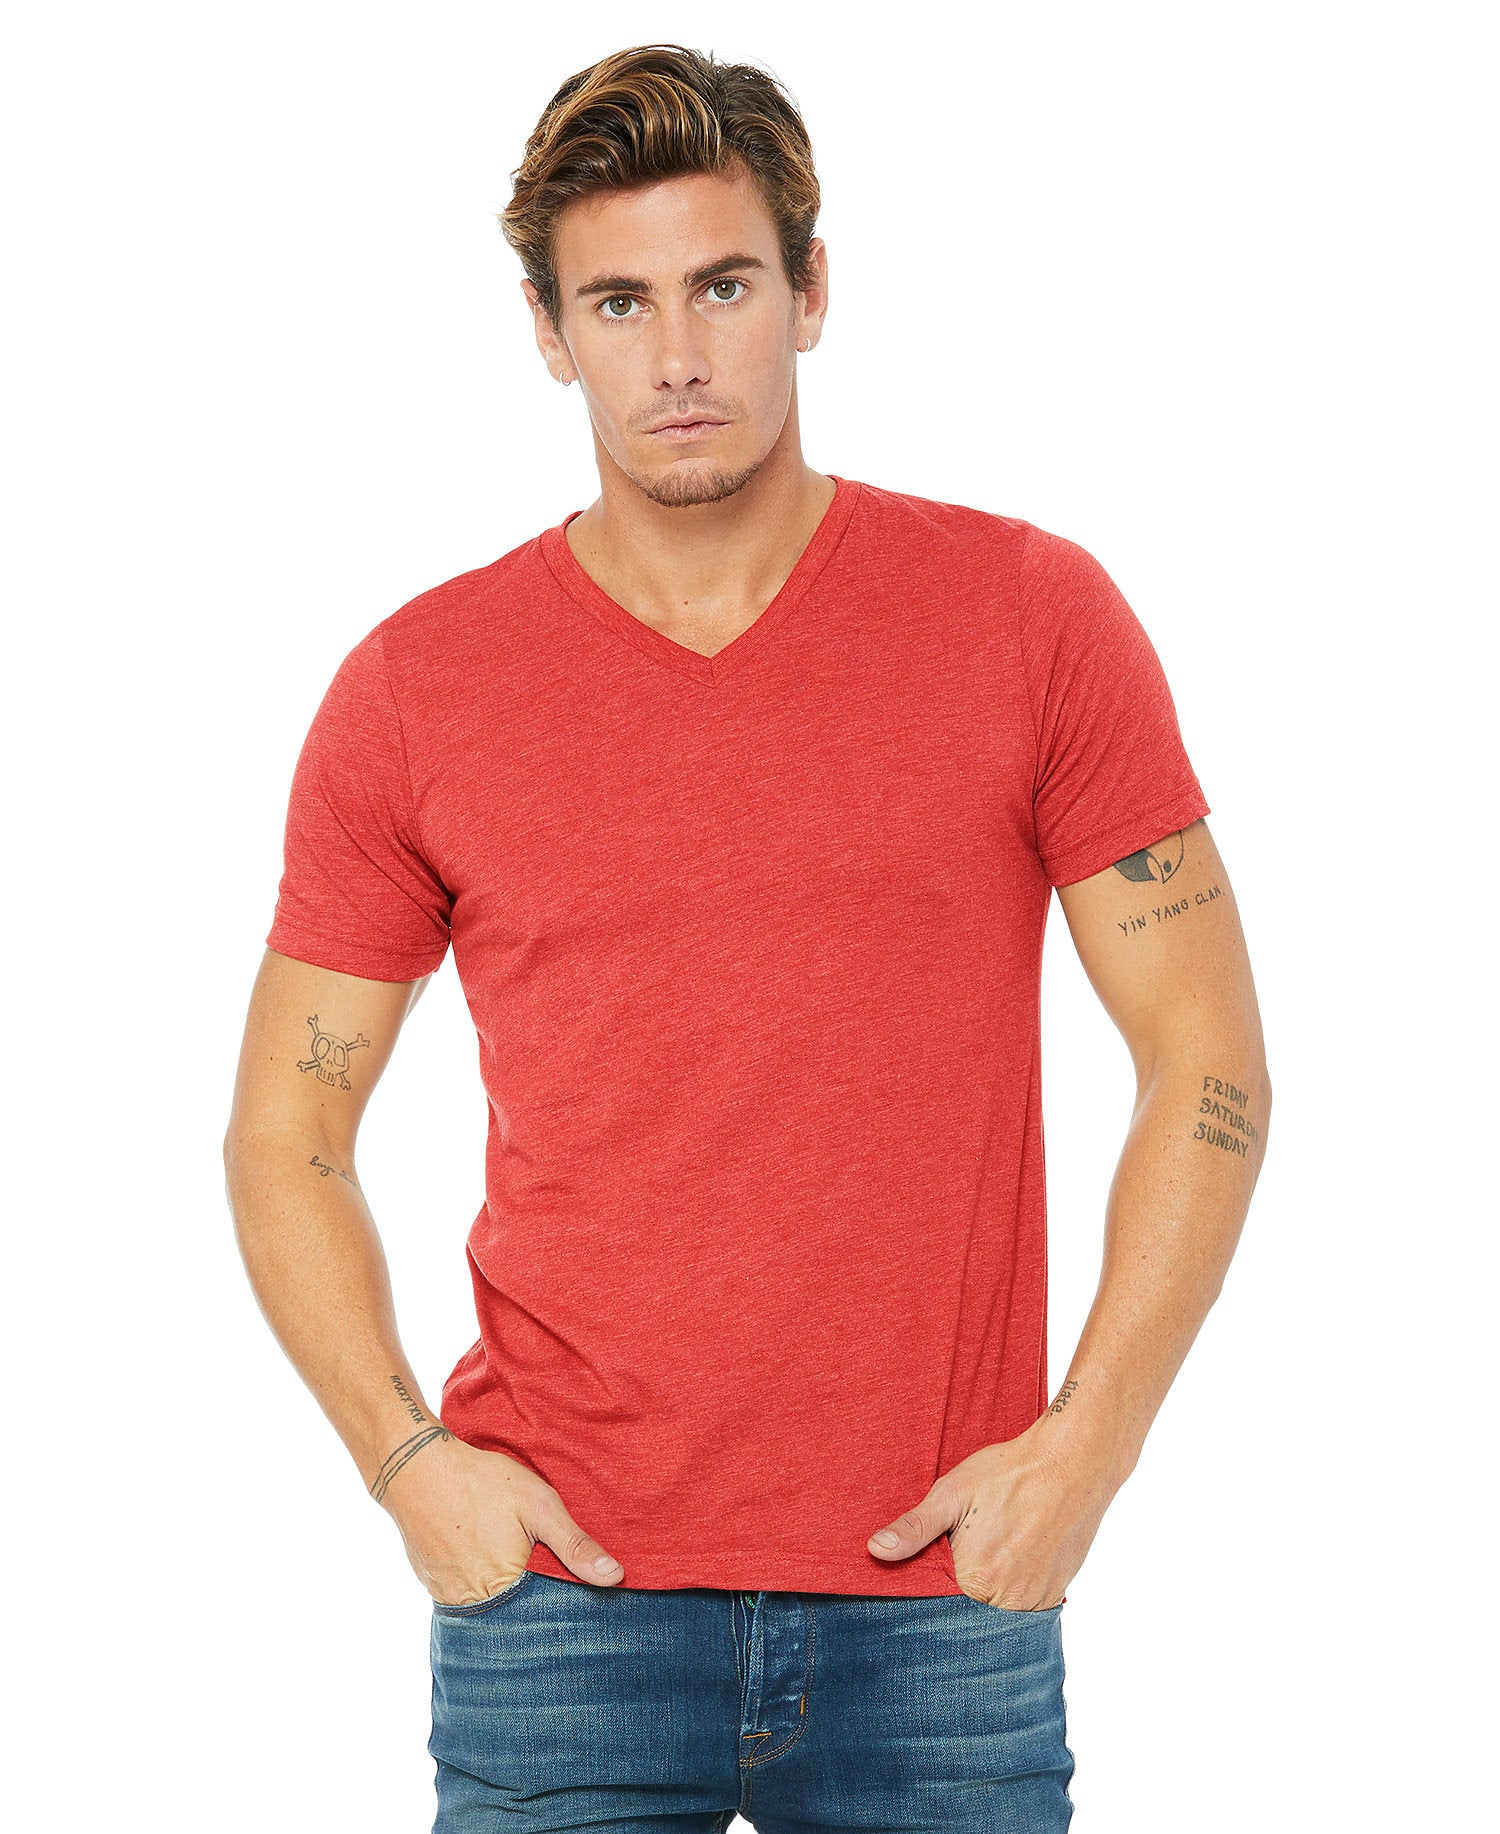 Bella + Canvas 3415 Unisex Triblend Short Sleeve V-Neck Tee - Red Triblend - HIT A Double